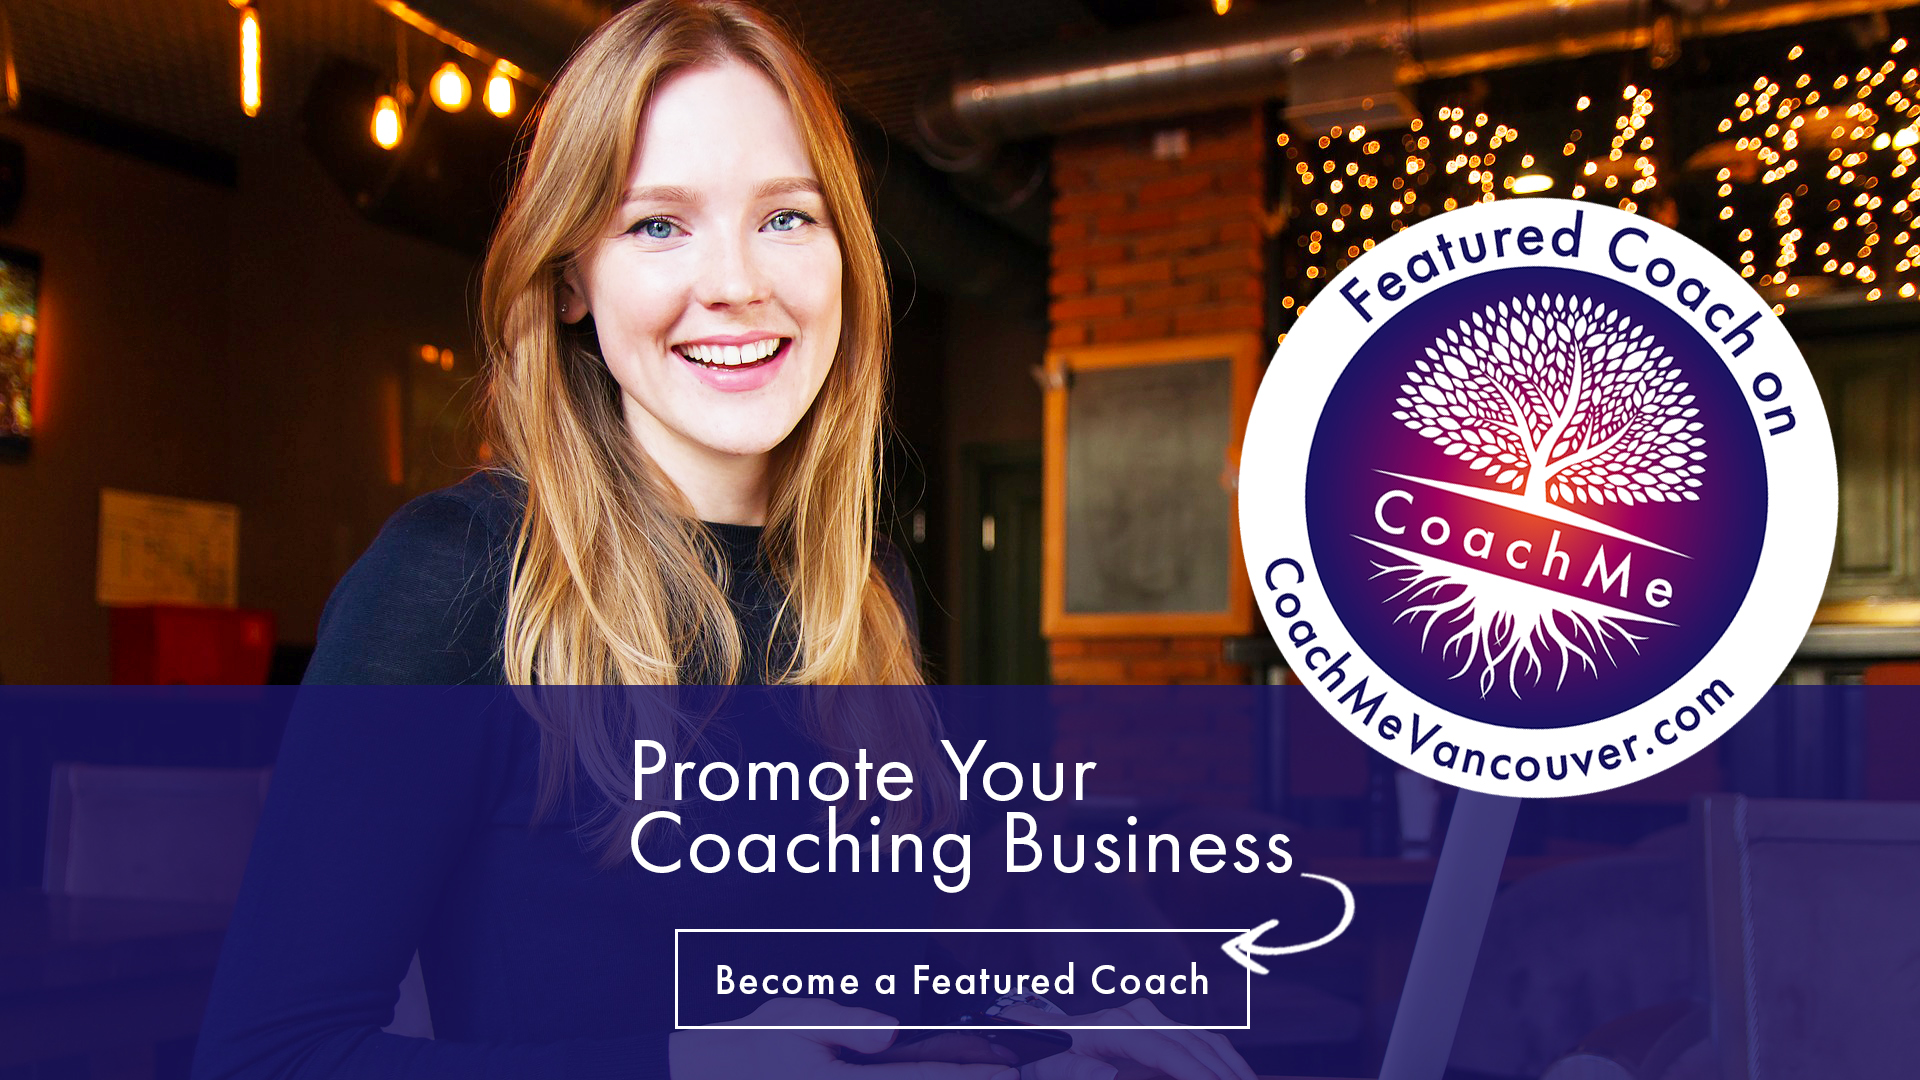 Certified Coaches - Market Your Coaching Business - Promotion For Coaches - CoachMe Vancouver